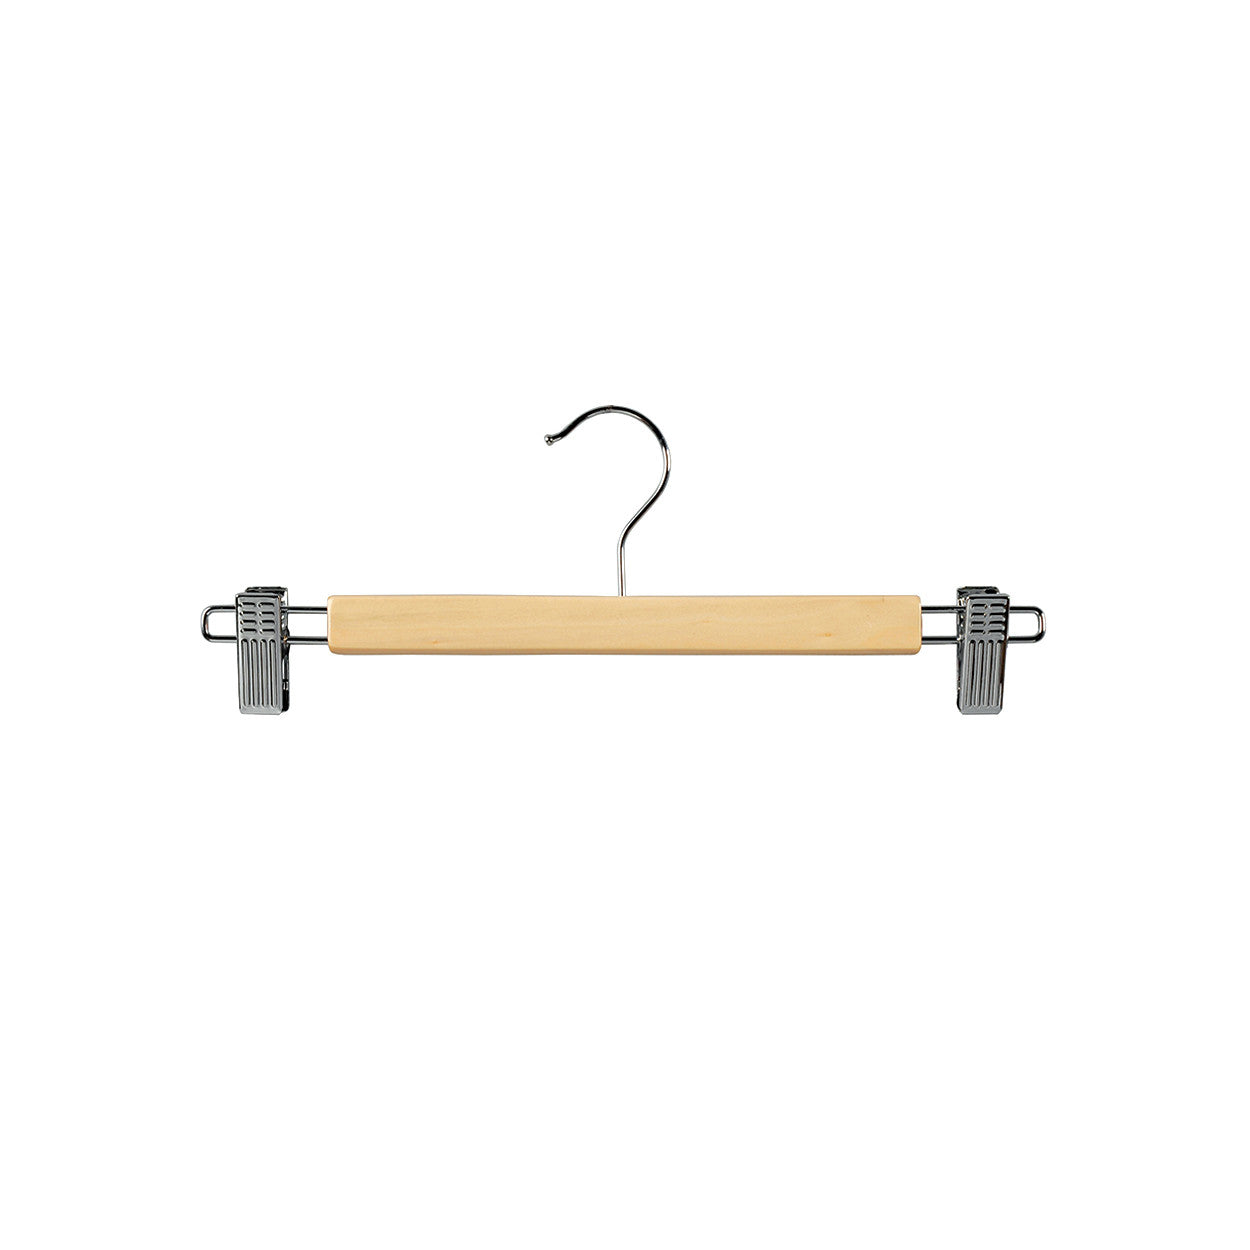 Beech Wooden hanger with clips at ends 330 W x 12 mm Thick (Bundle of 50) H2634BH-50